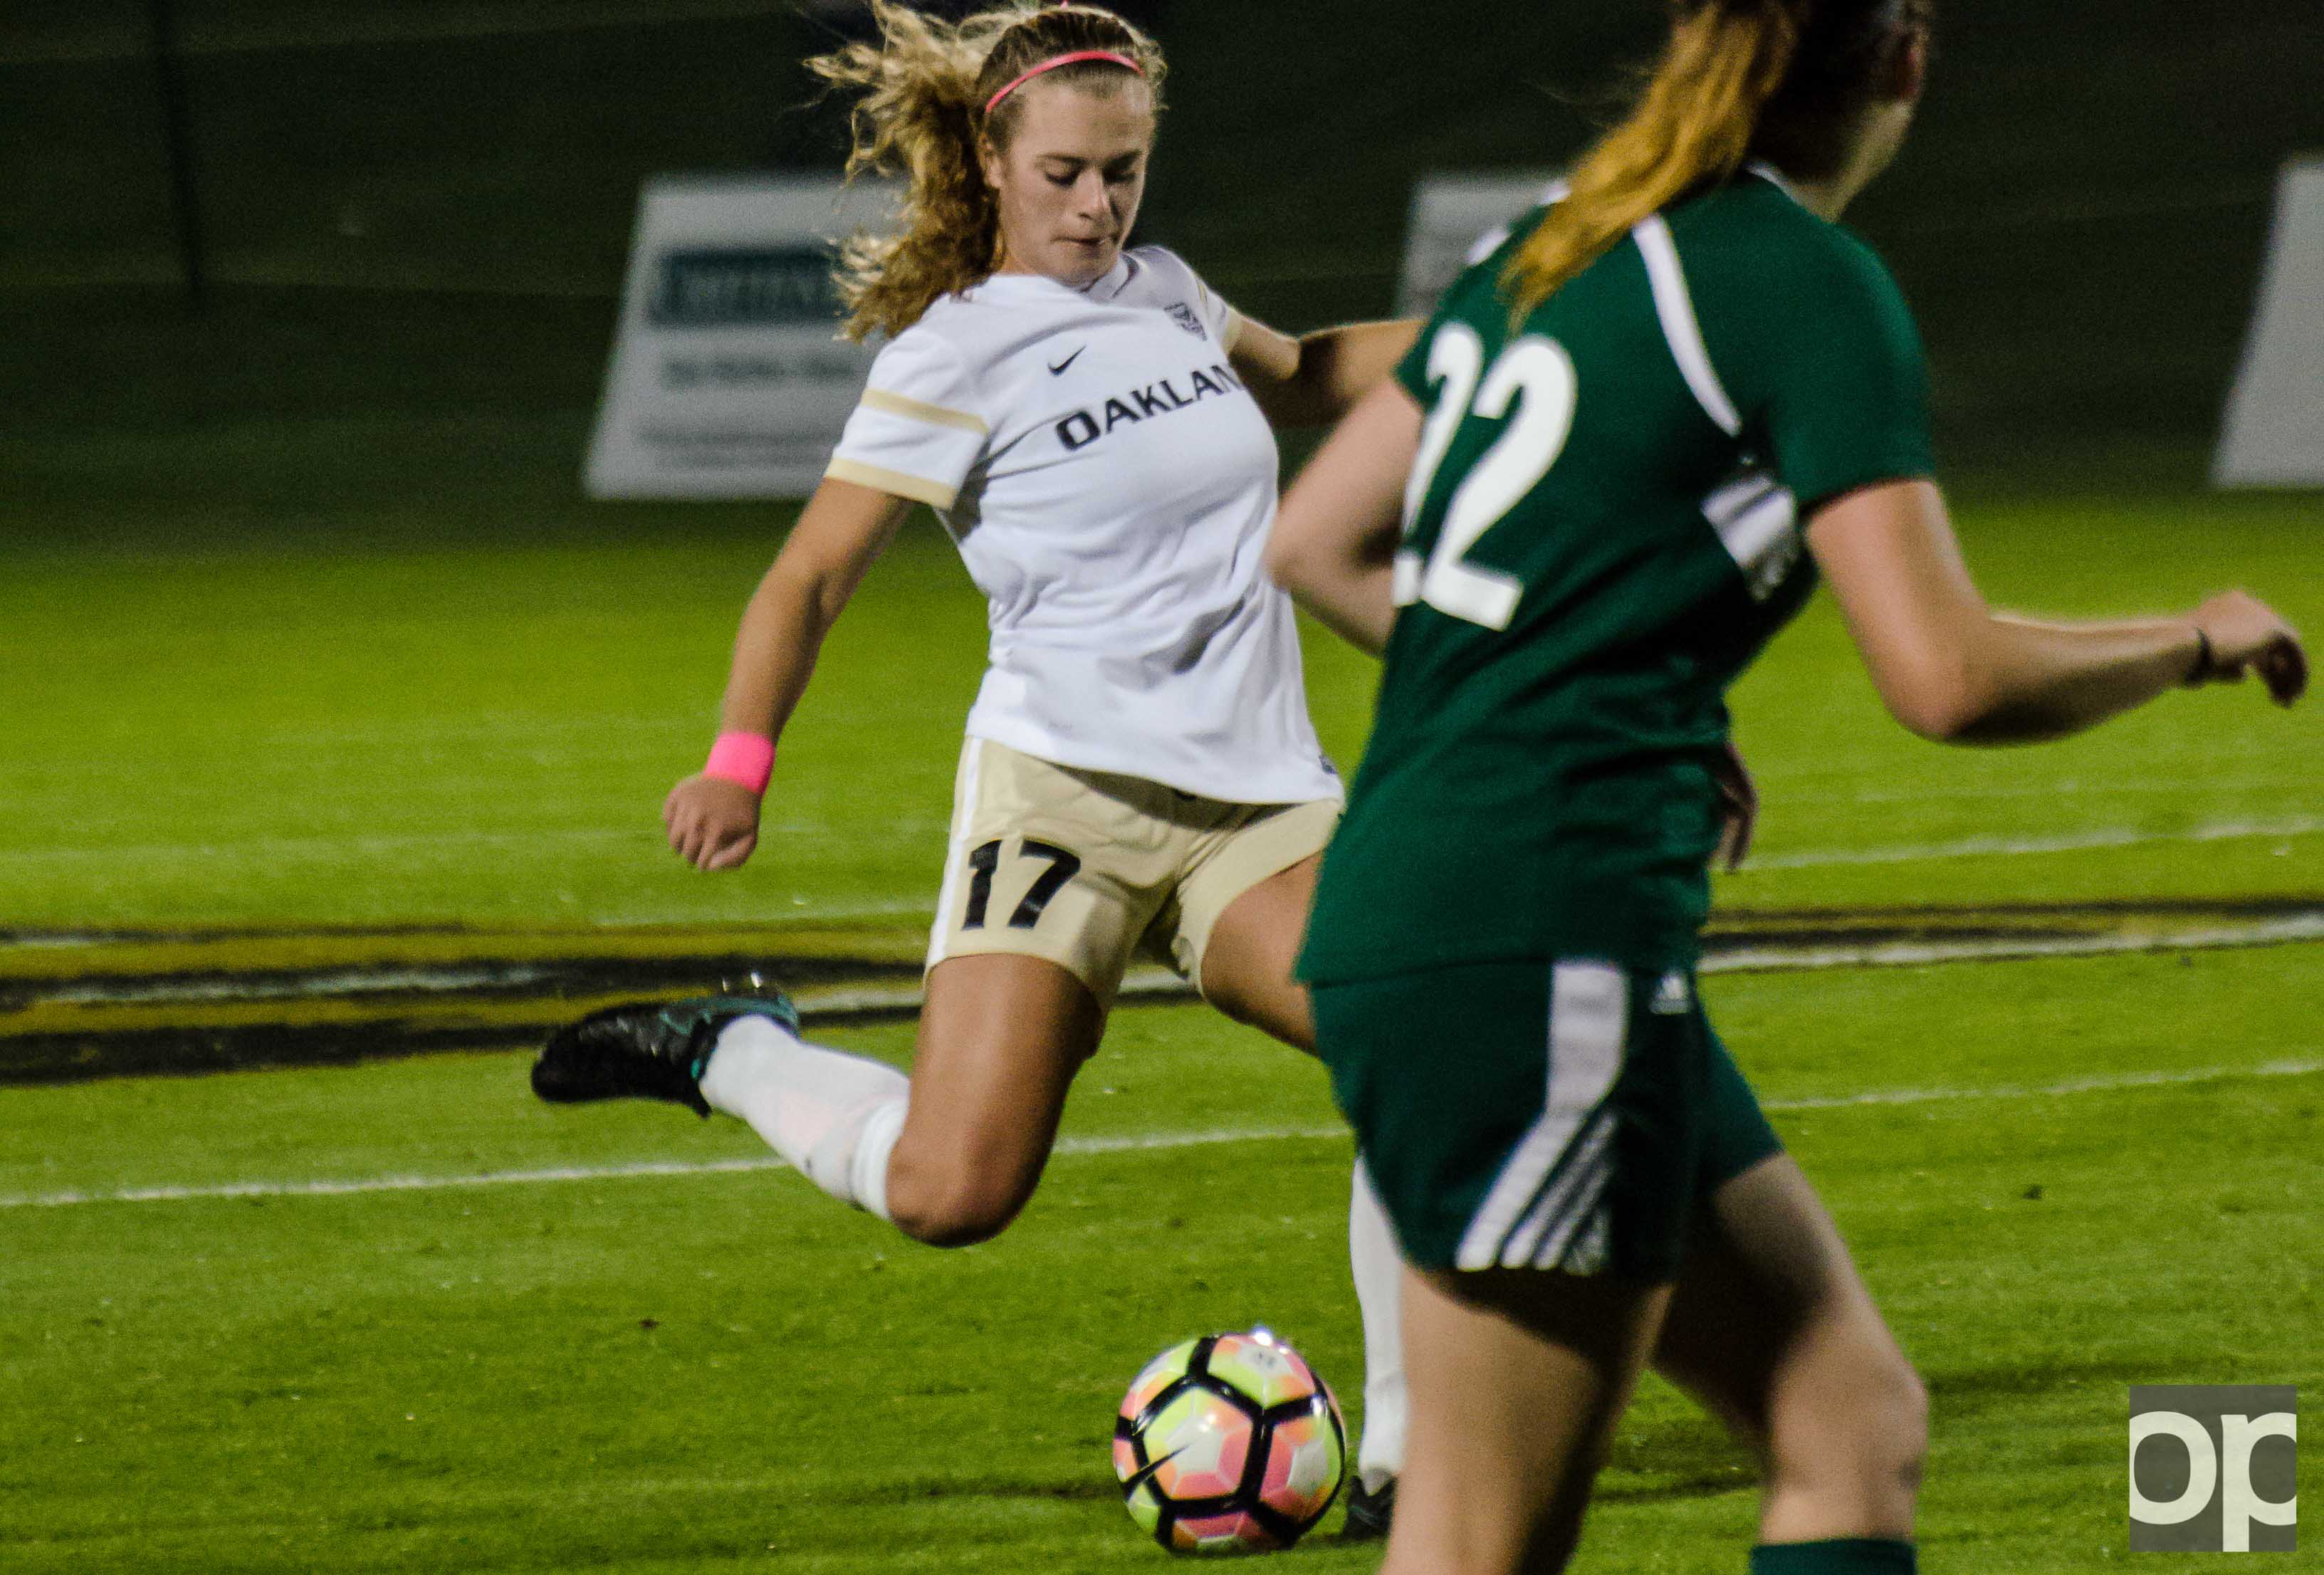 The Golden Grizzlies scored in the 68th and the 86th minute of the game.